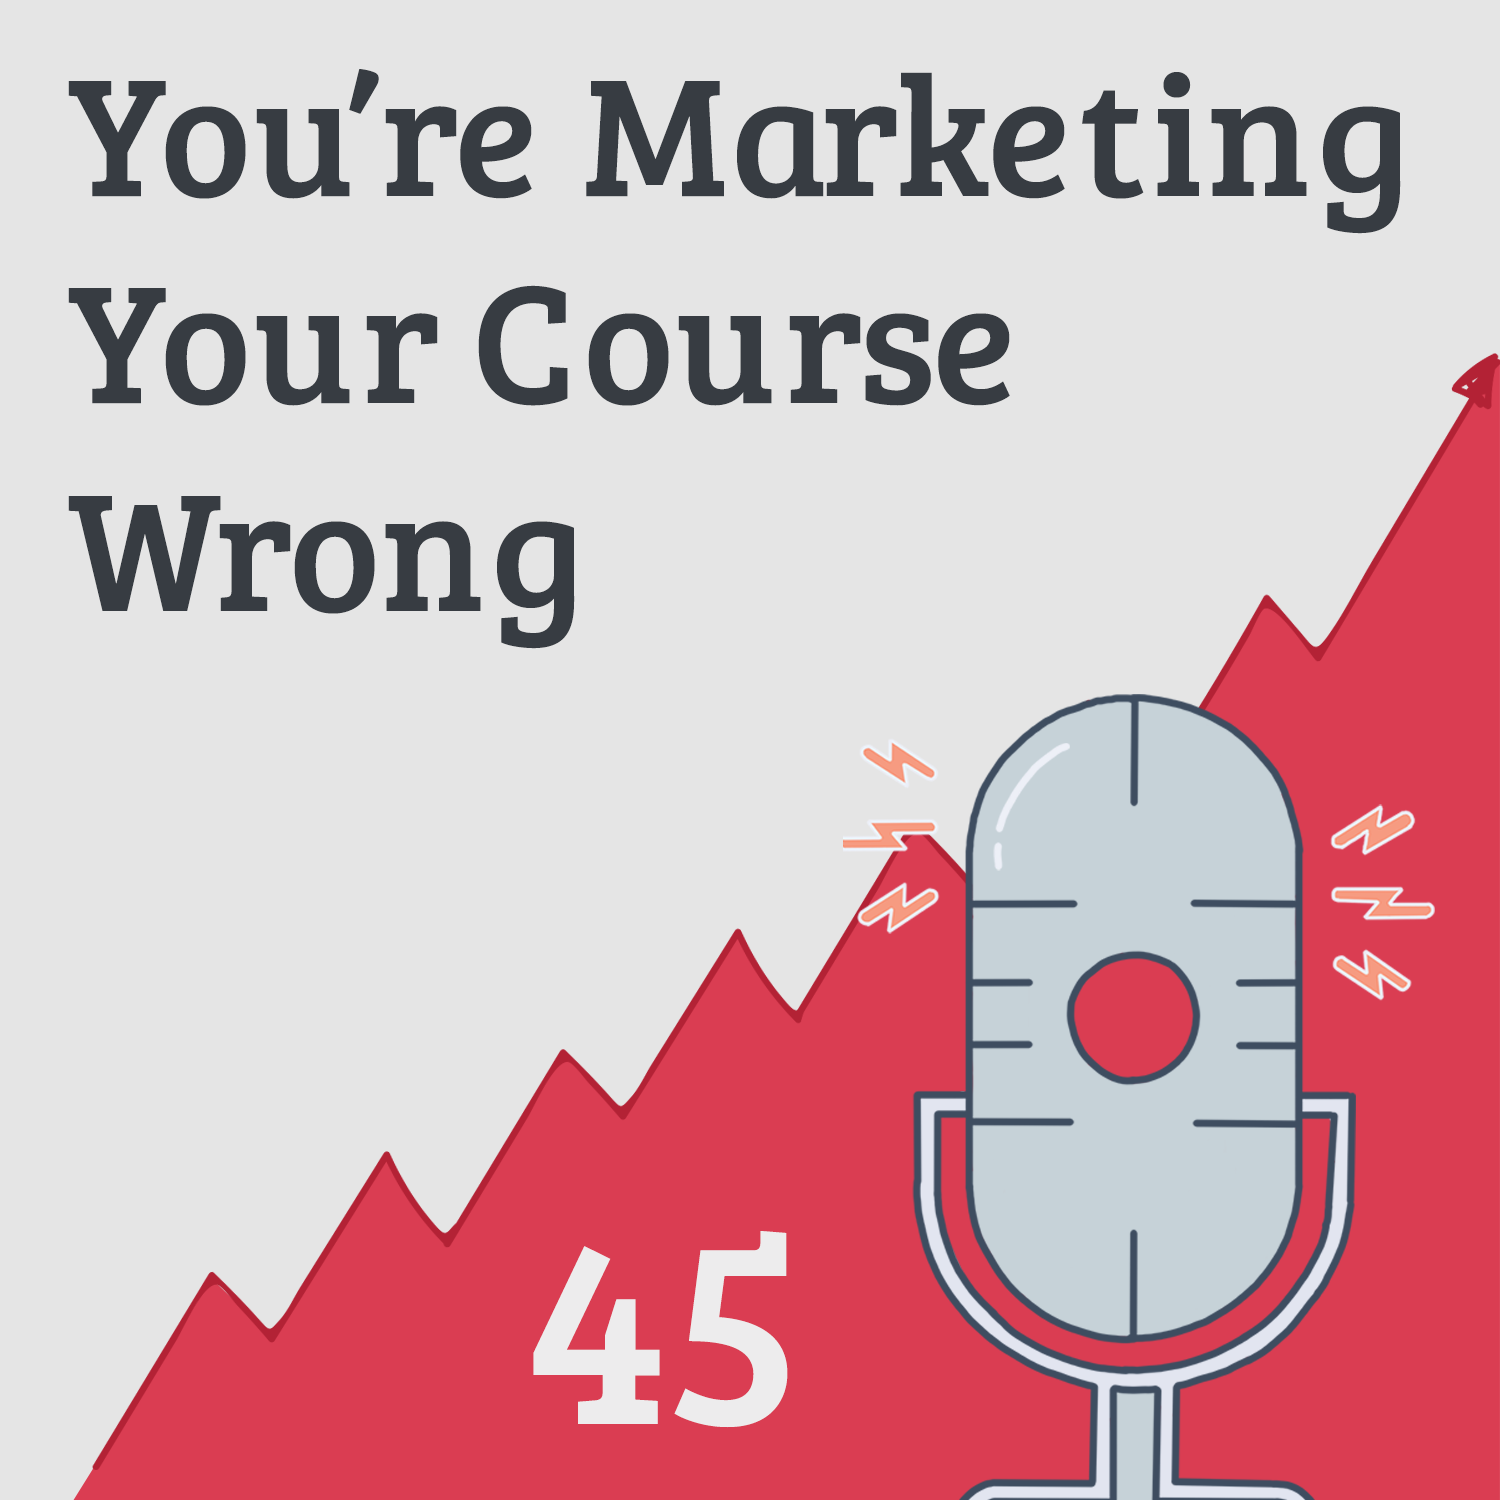 Free Traffic: Your Course Marketing Sucks